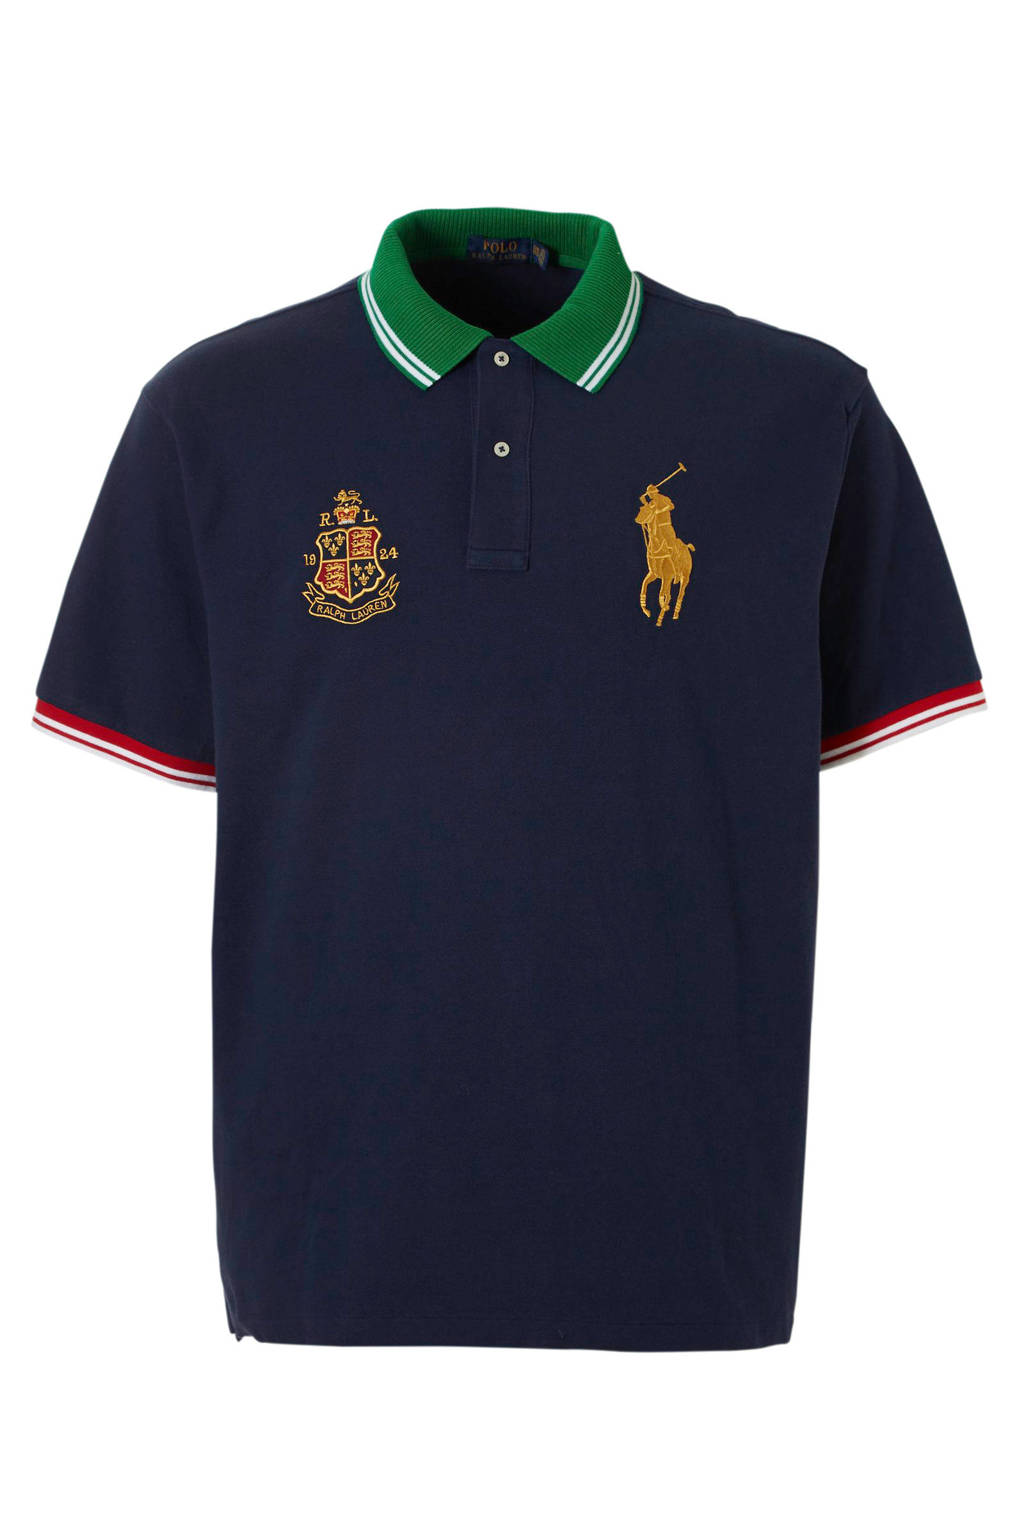 POLO Ralph Lauren Big & Tall +size polo, Marin